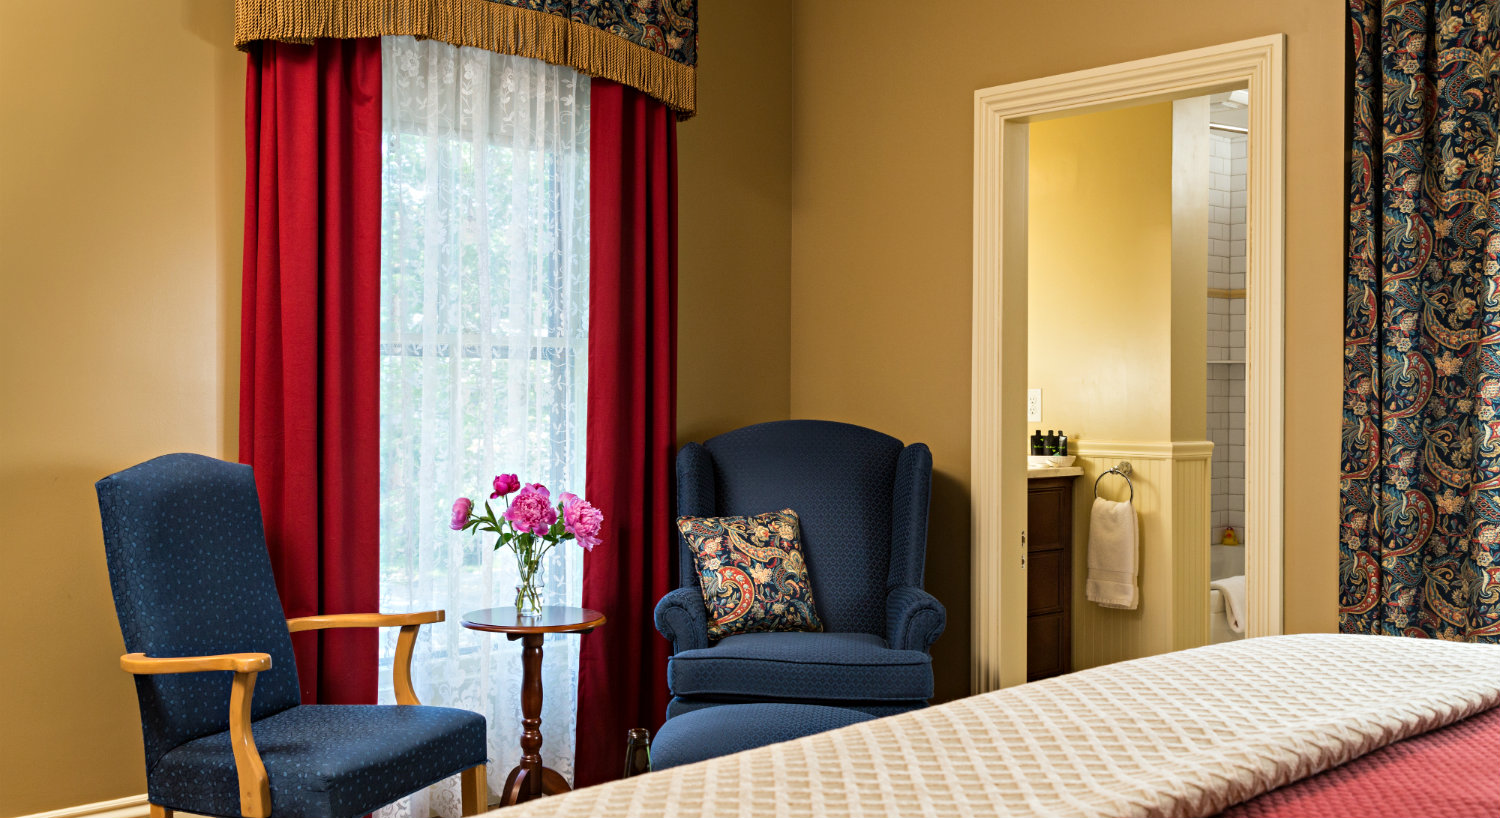 Elegant guest room with beige walls, red curtains and a large bed alongside two blue chairs.